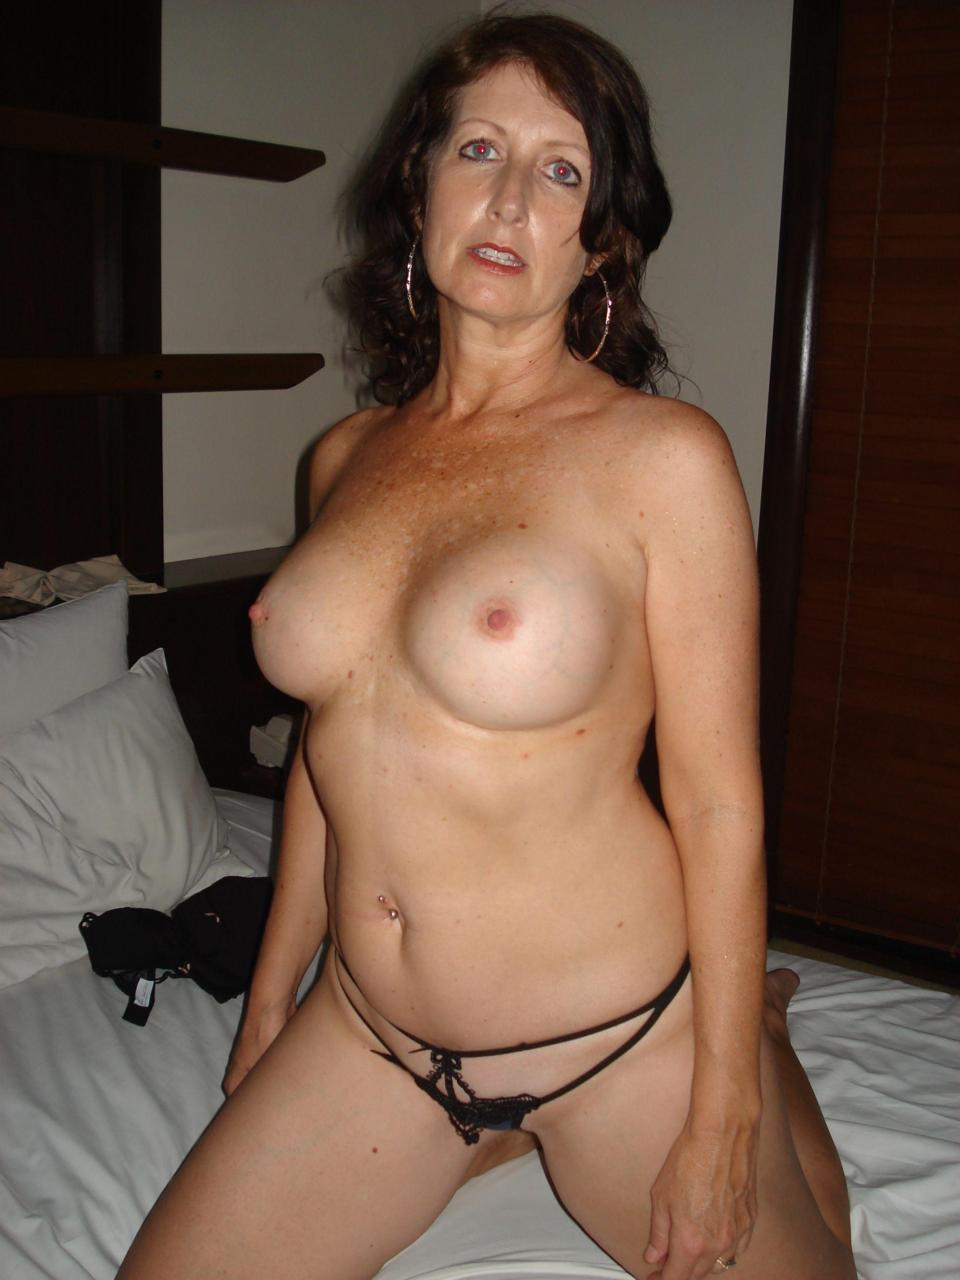 Sex For Woman Looking Local Kinky Perverted